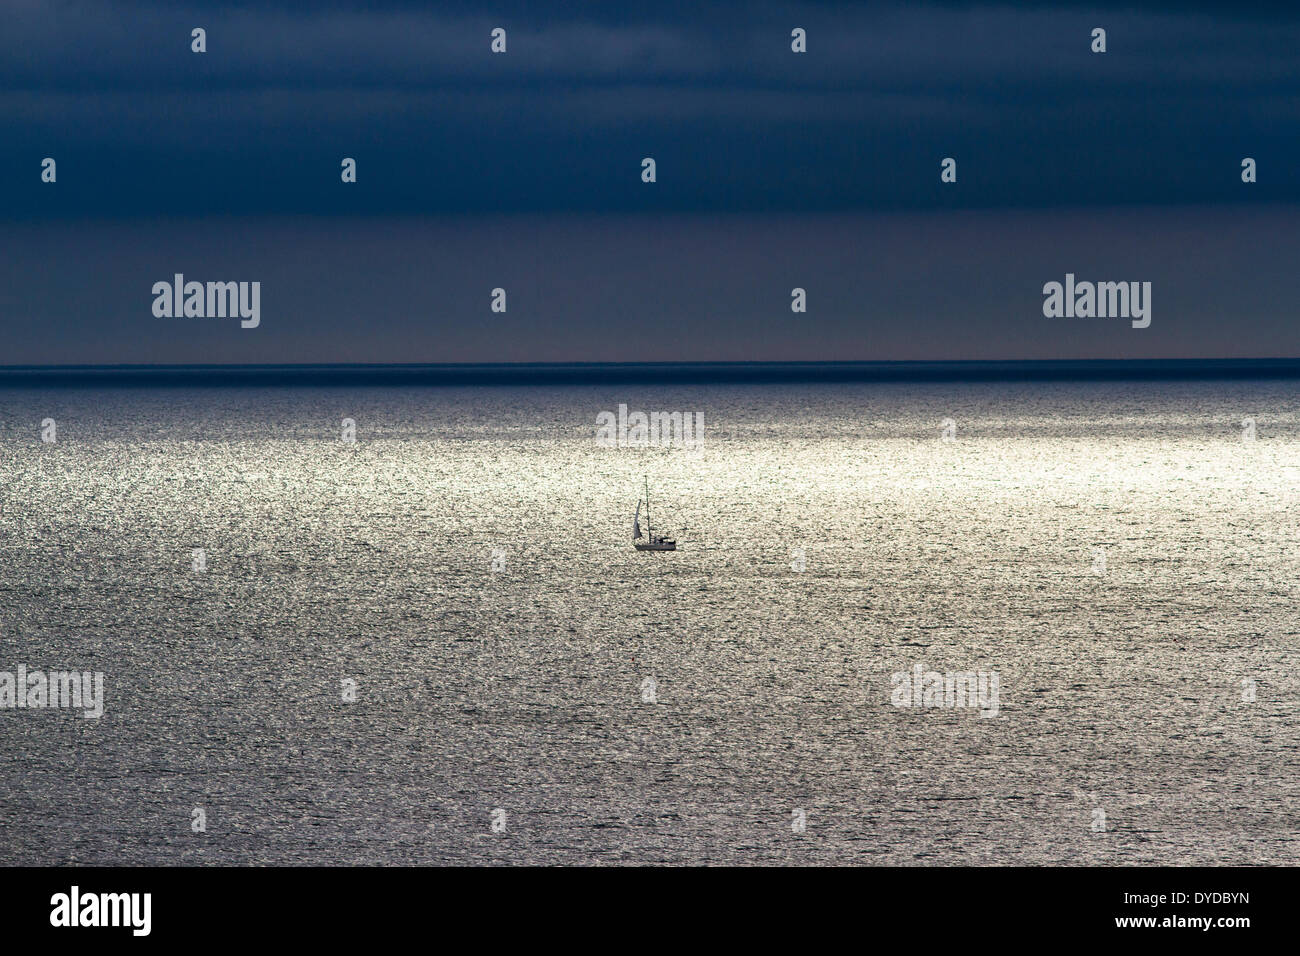 A small yacht under sail far out at sea. - Stock Image